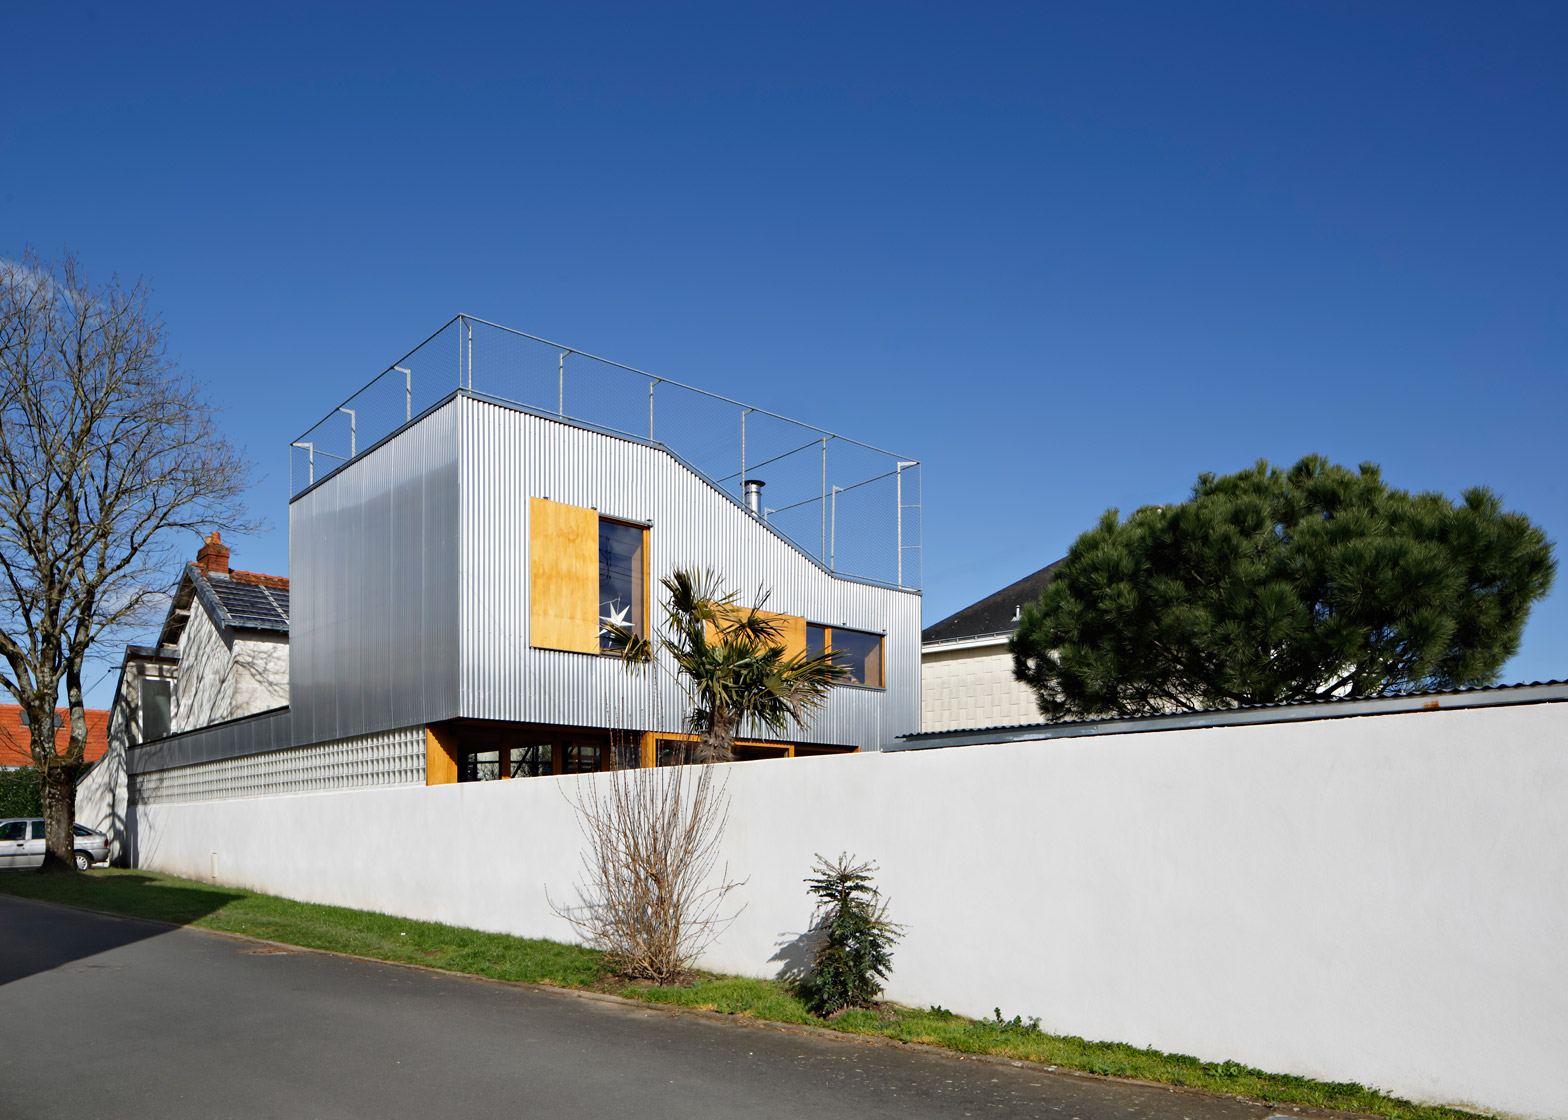 93246ad16b9 A Stunning Corrugated Metal Home in Nantes, France 1930's | BlueisKewl